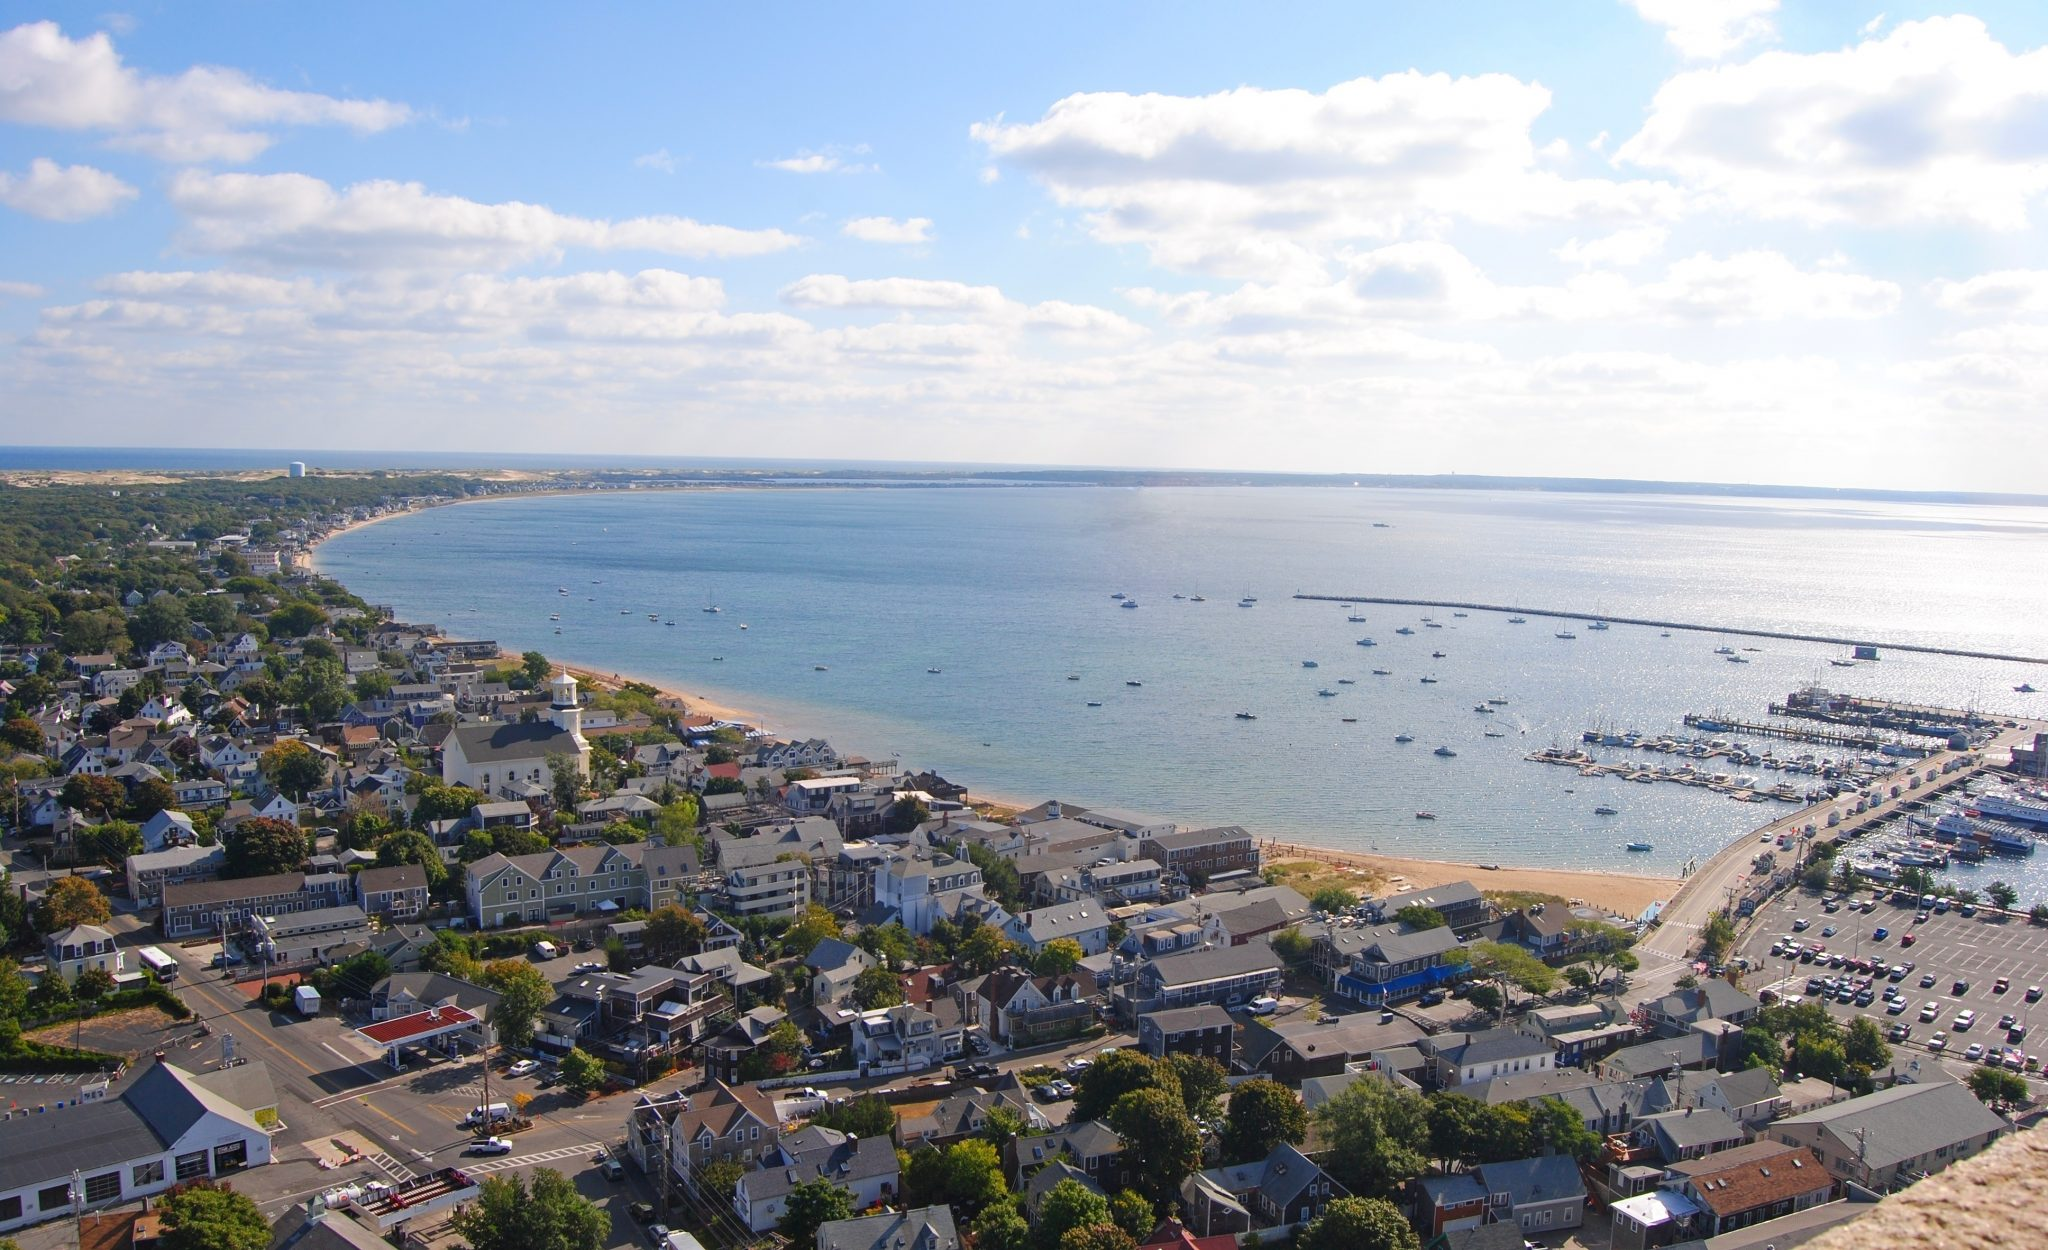 View over Provincetown, Massachusetts